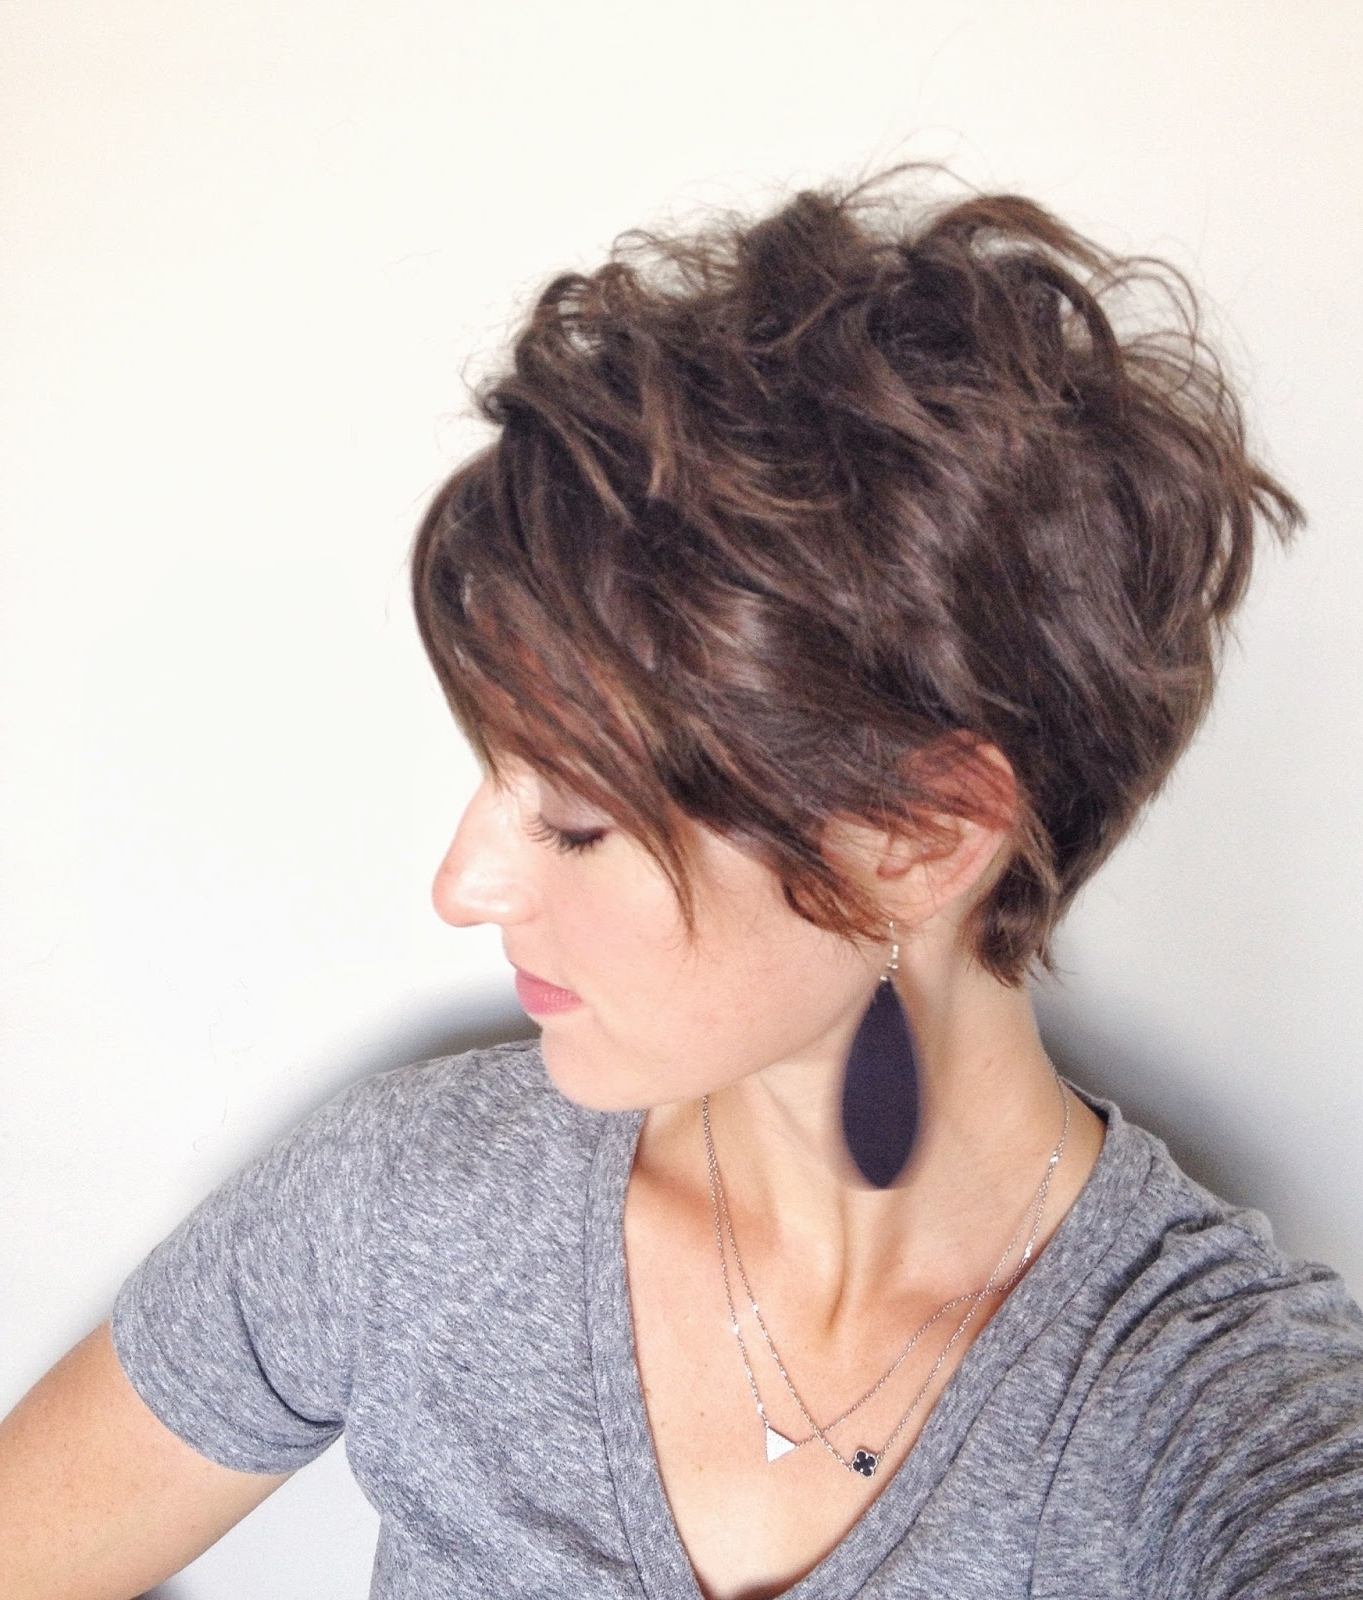 Maybe Matilda: Asymmetrical Pixie Cut   Hairstyles I Like Intended For 2018 Pixie Hairstyles With Long Sides (View 7 of 15)